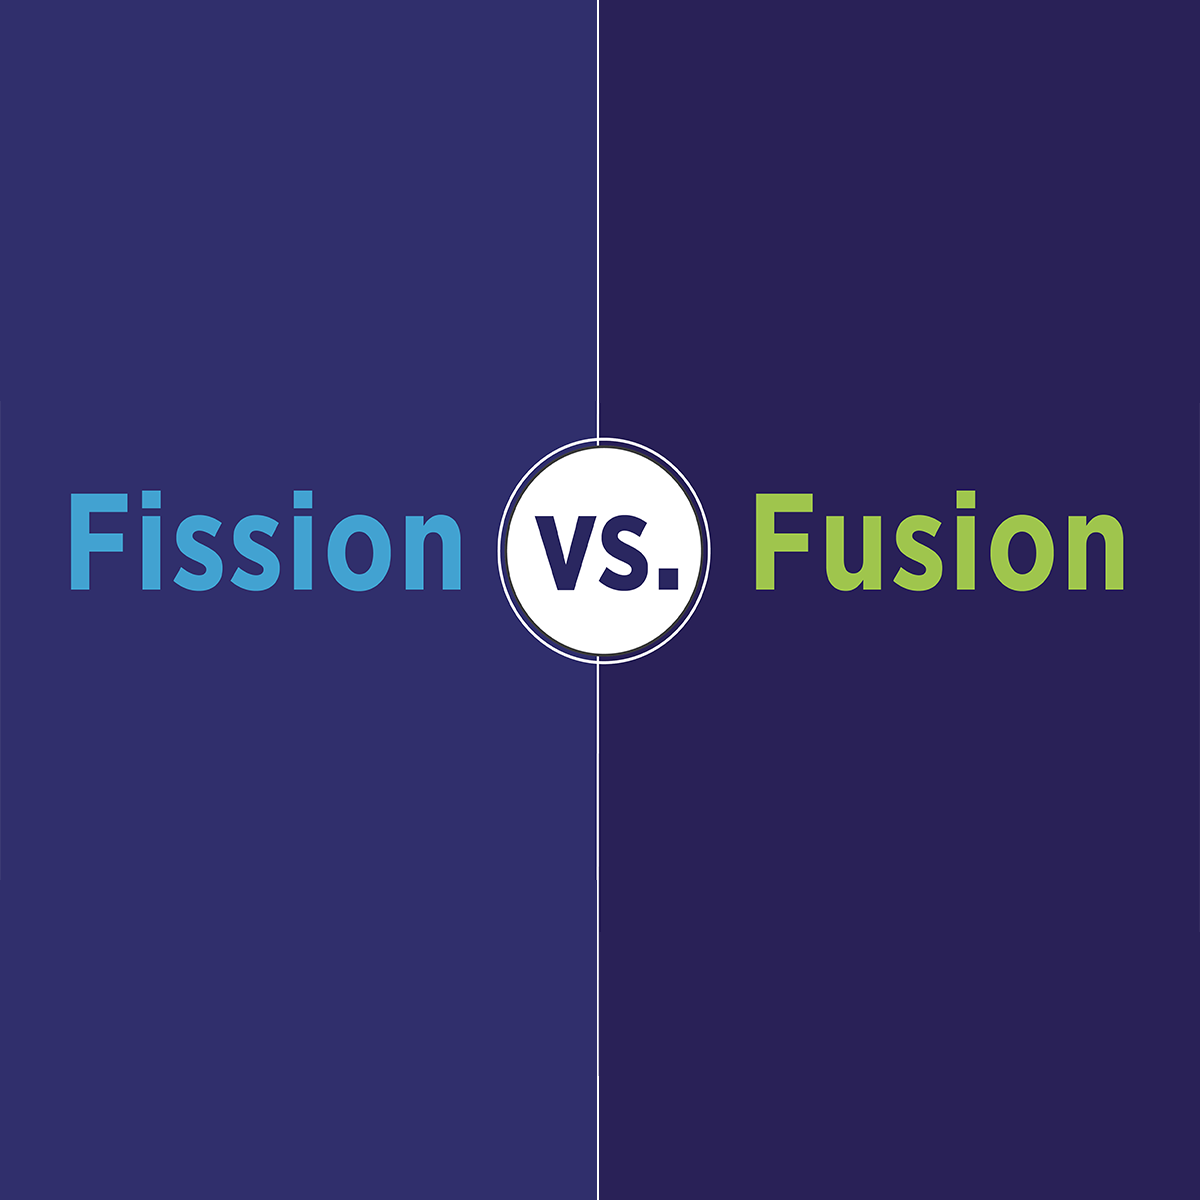 Nuclear Fission and Fusion Worksheet Answers and Nuclear Decay as well Nuclear Fission and Fusion Worksheet Answers Awesome Simple Machines as well Nuclear Fission and Fusion Worksheet Answers ther with Nuclear further Fission and Fusion Worksheet   Siteraven in addition radioactive decay problems further This is the definition of nuclear fission and nuclear fusion further Fission and Fusion  What is the Difference    Department of Energy additionally Nuclear Fission Versus Nuclear Fusion besides Nuclear Fission and Fusion by missnpye   Teaching Resources in addition Difference Between Nuclear Fission and Nuclear Fusion   Physics together with Quiz   Worksheet   Nuclear Fusion Process   Study   FREE Printable additionally Nuclear Fission Worksheet   Free Printables Worksheet in addition Fission and Fusion by Arran10   Teaching Resources additionally Nuclear Fission Worksheet ABITLIKETHIS  Nuclear Reactions Worksheet in addition Nuclear Chemistry Worksheet   Nuclear Chemistry Worksheet Using your moreover Nuclear Fission and Fusion Worksheet Answers with Nuclear Chemistry. on nuclear fission and fusion worksheet